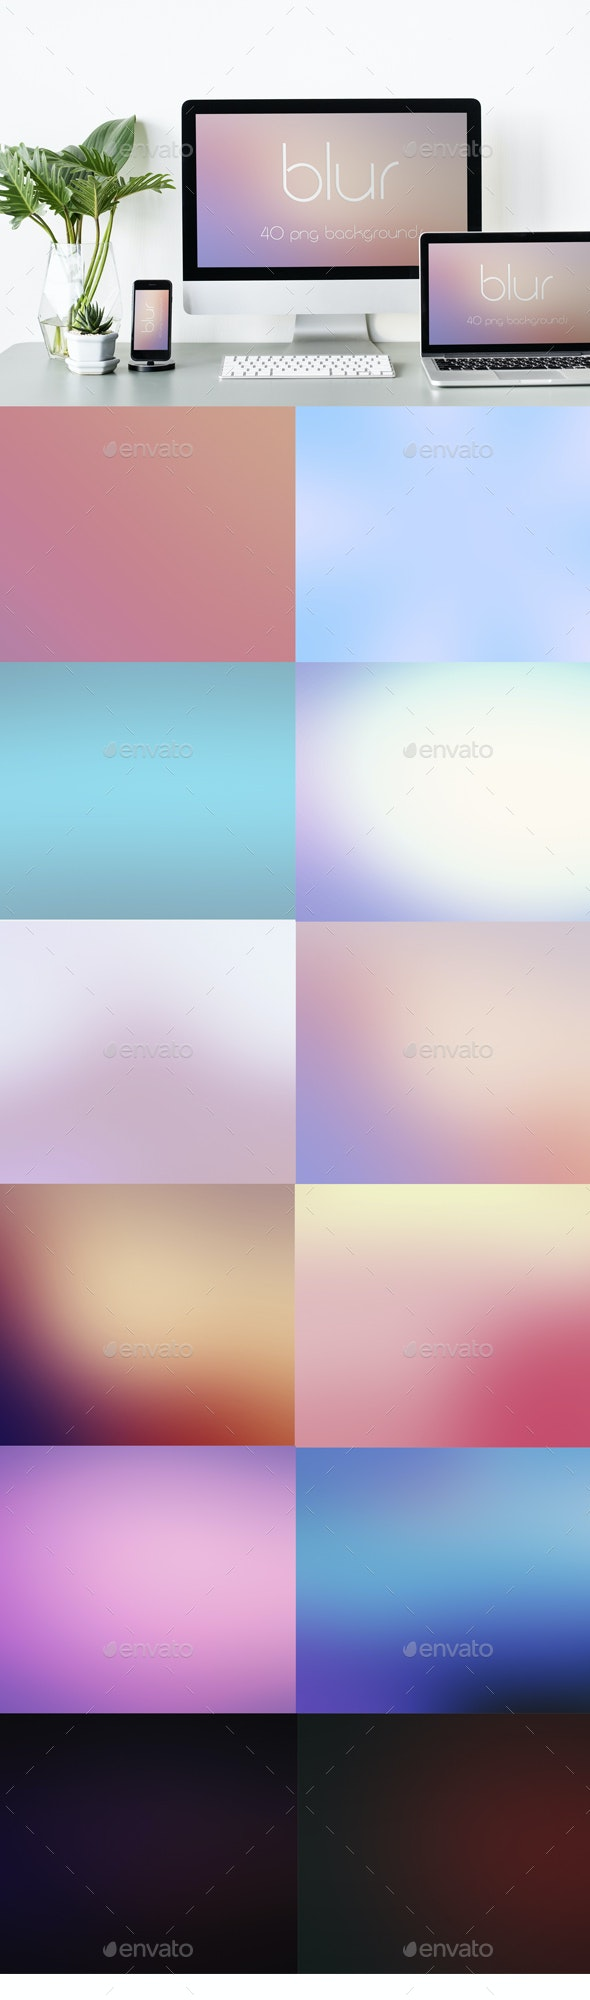 Blur Luxury Backgrounds Pack - Abstract Backgrounds